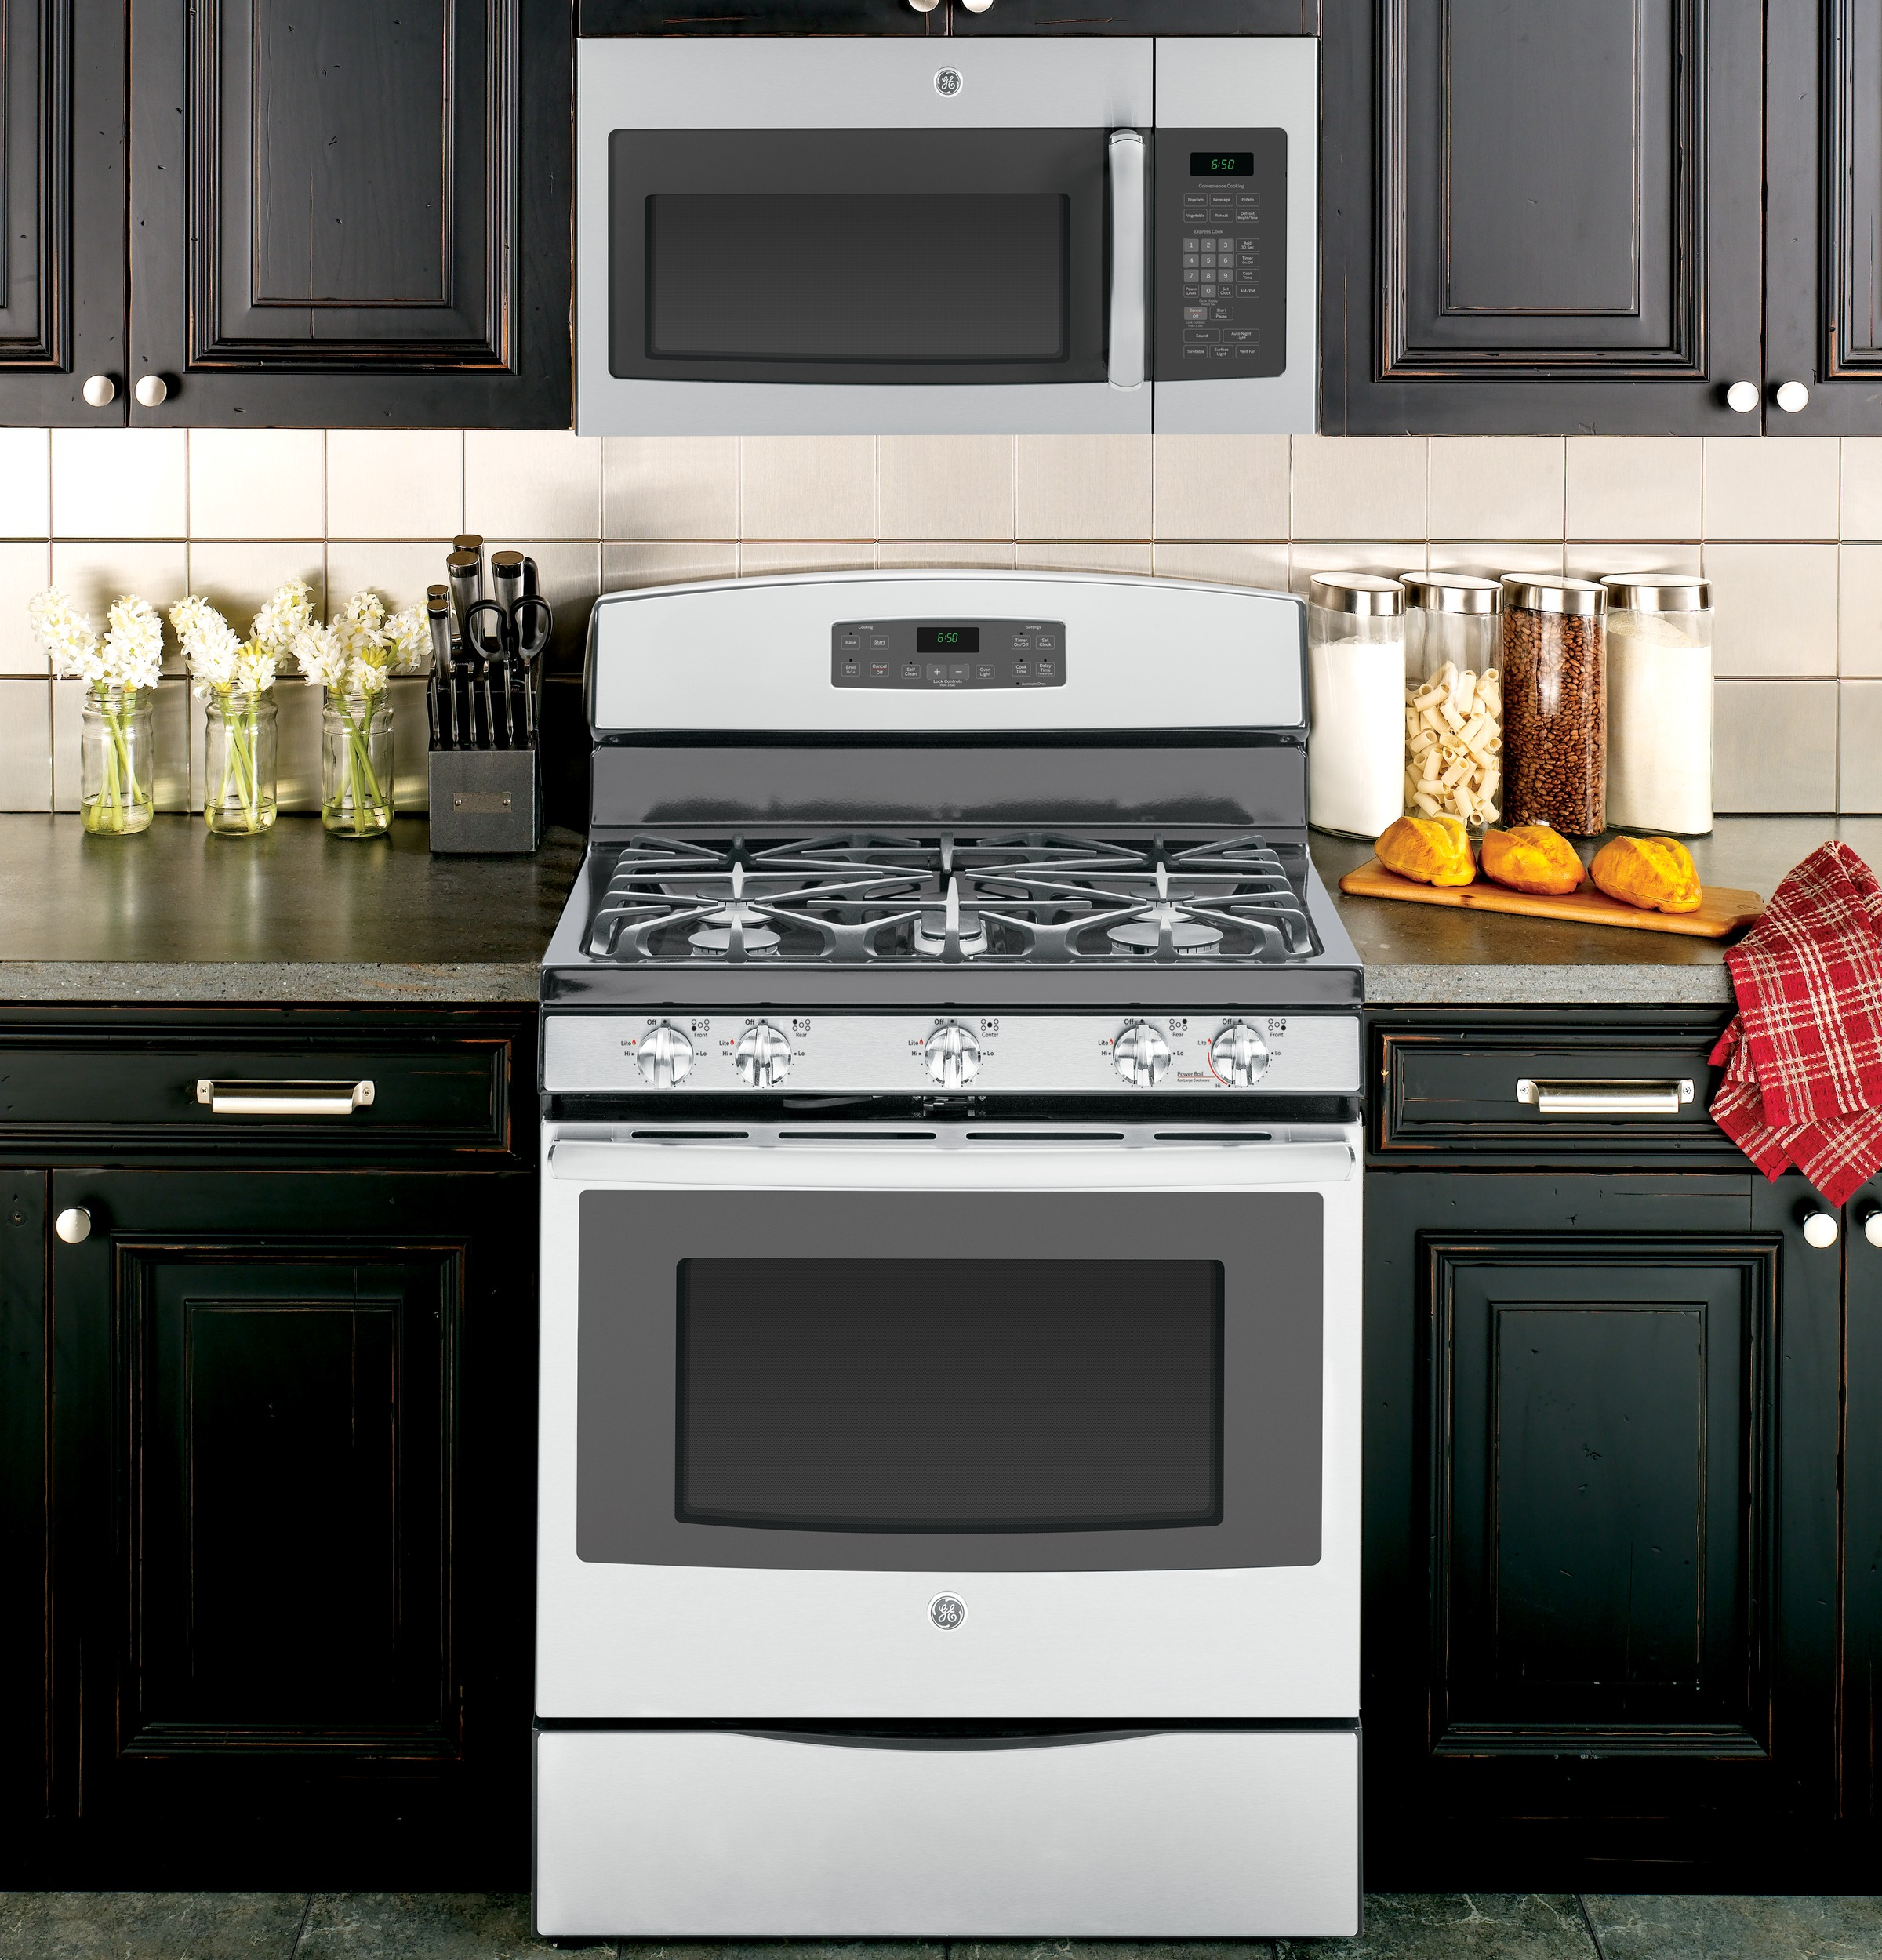 Height of microwave over stove - Product Image Product Image Product Image